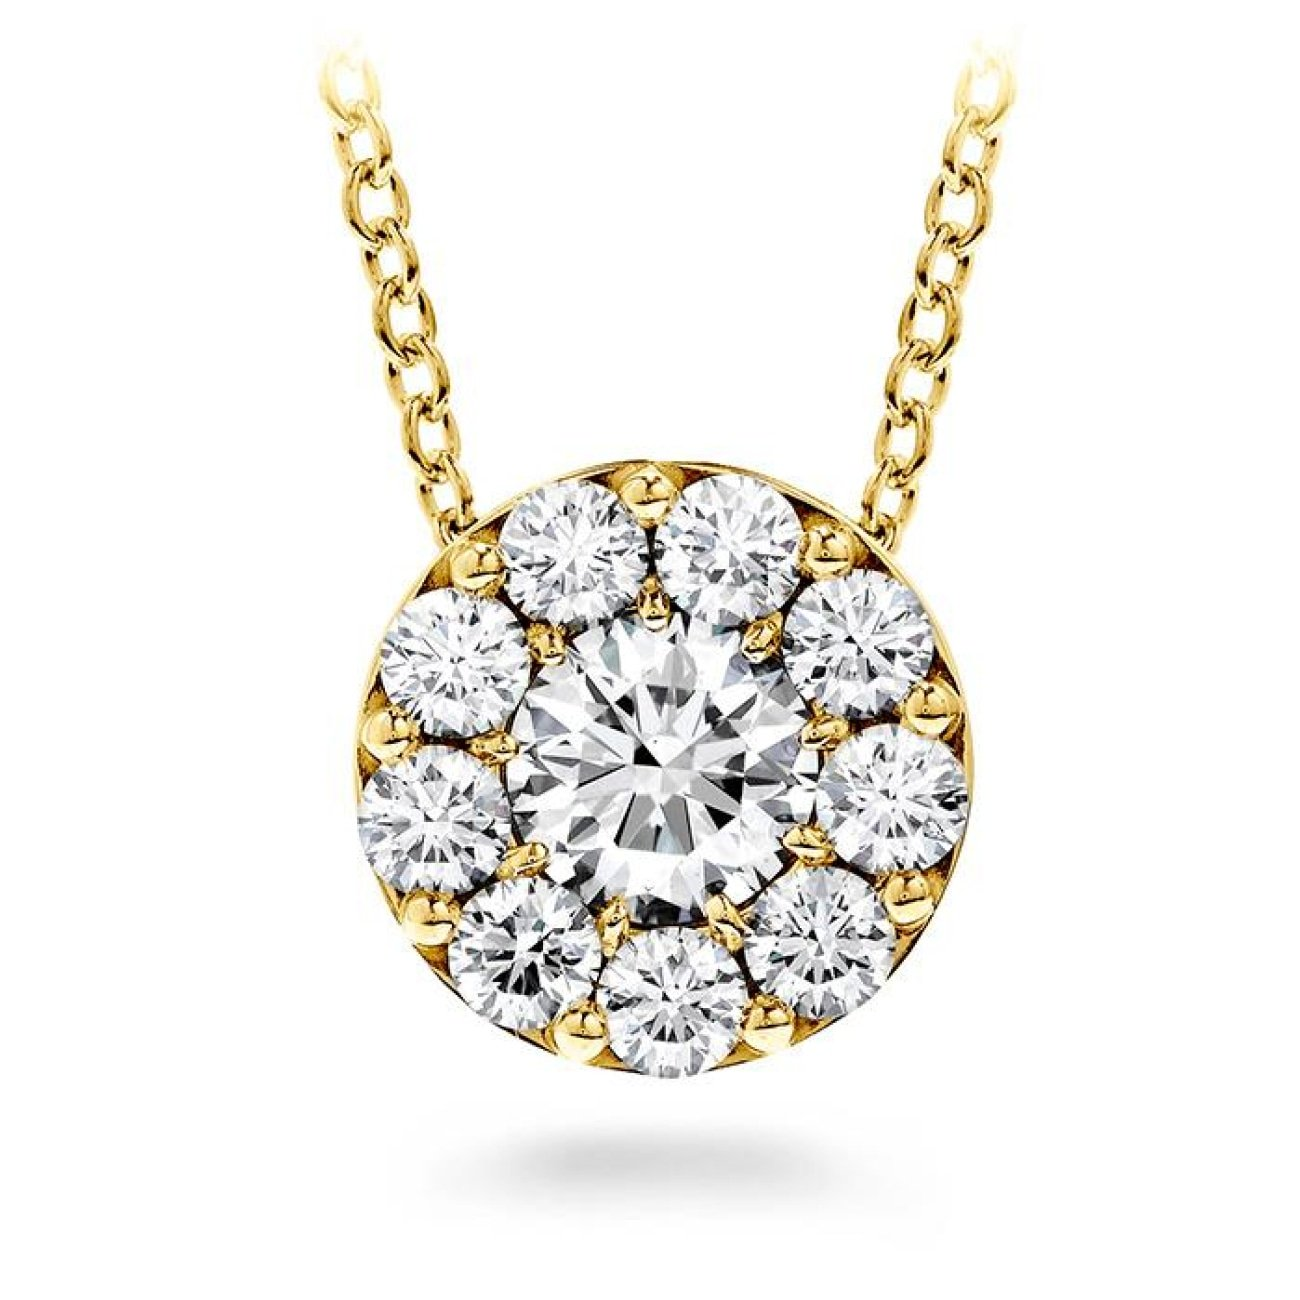 https://www.manfredijewels.com/collections/jewelry/products/fulfillment-pendant-necklace-2